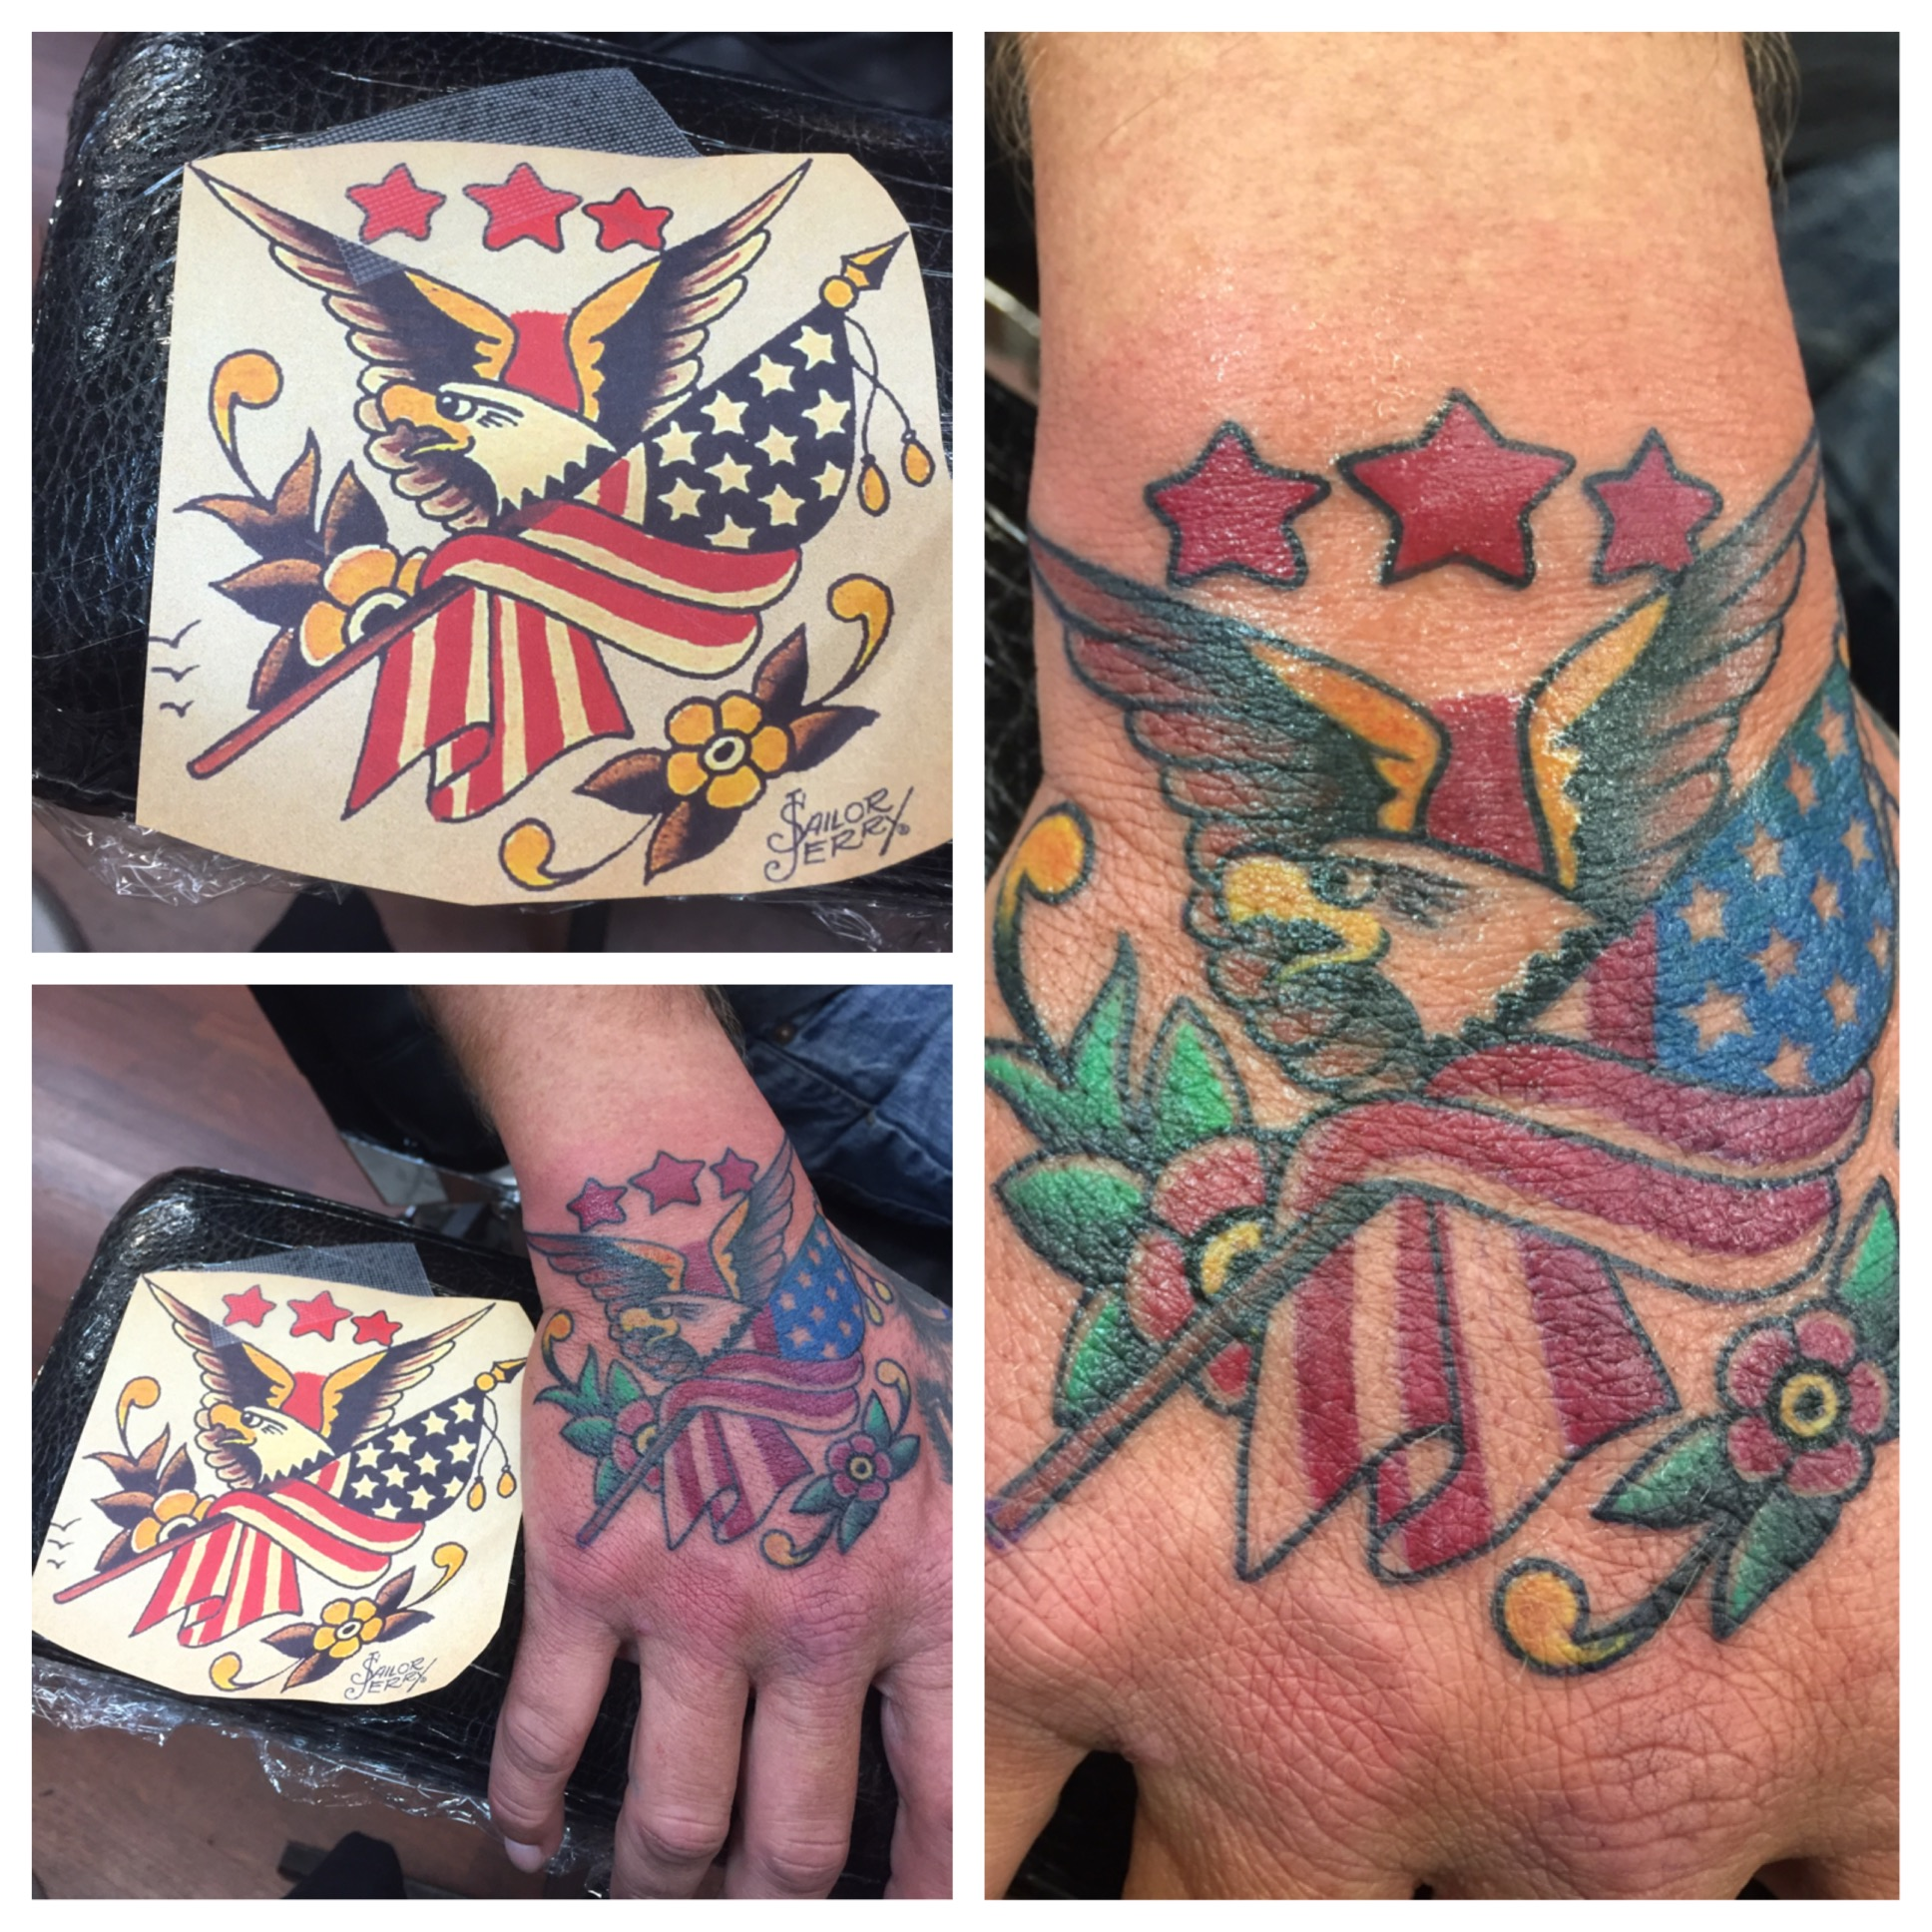 e15bcfb7b American traditional sailor jerry eagle with flag and flowers on hand